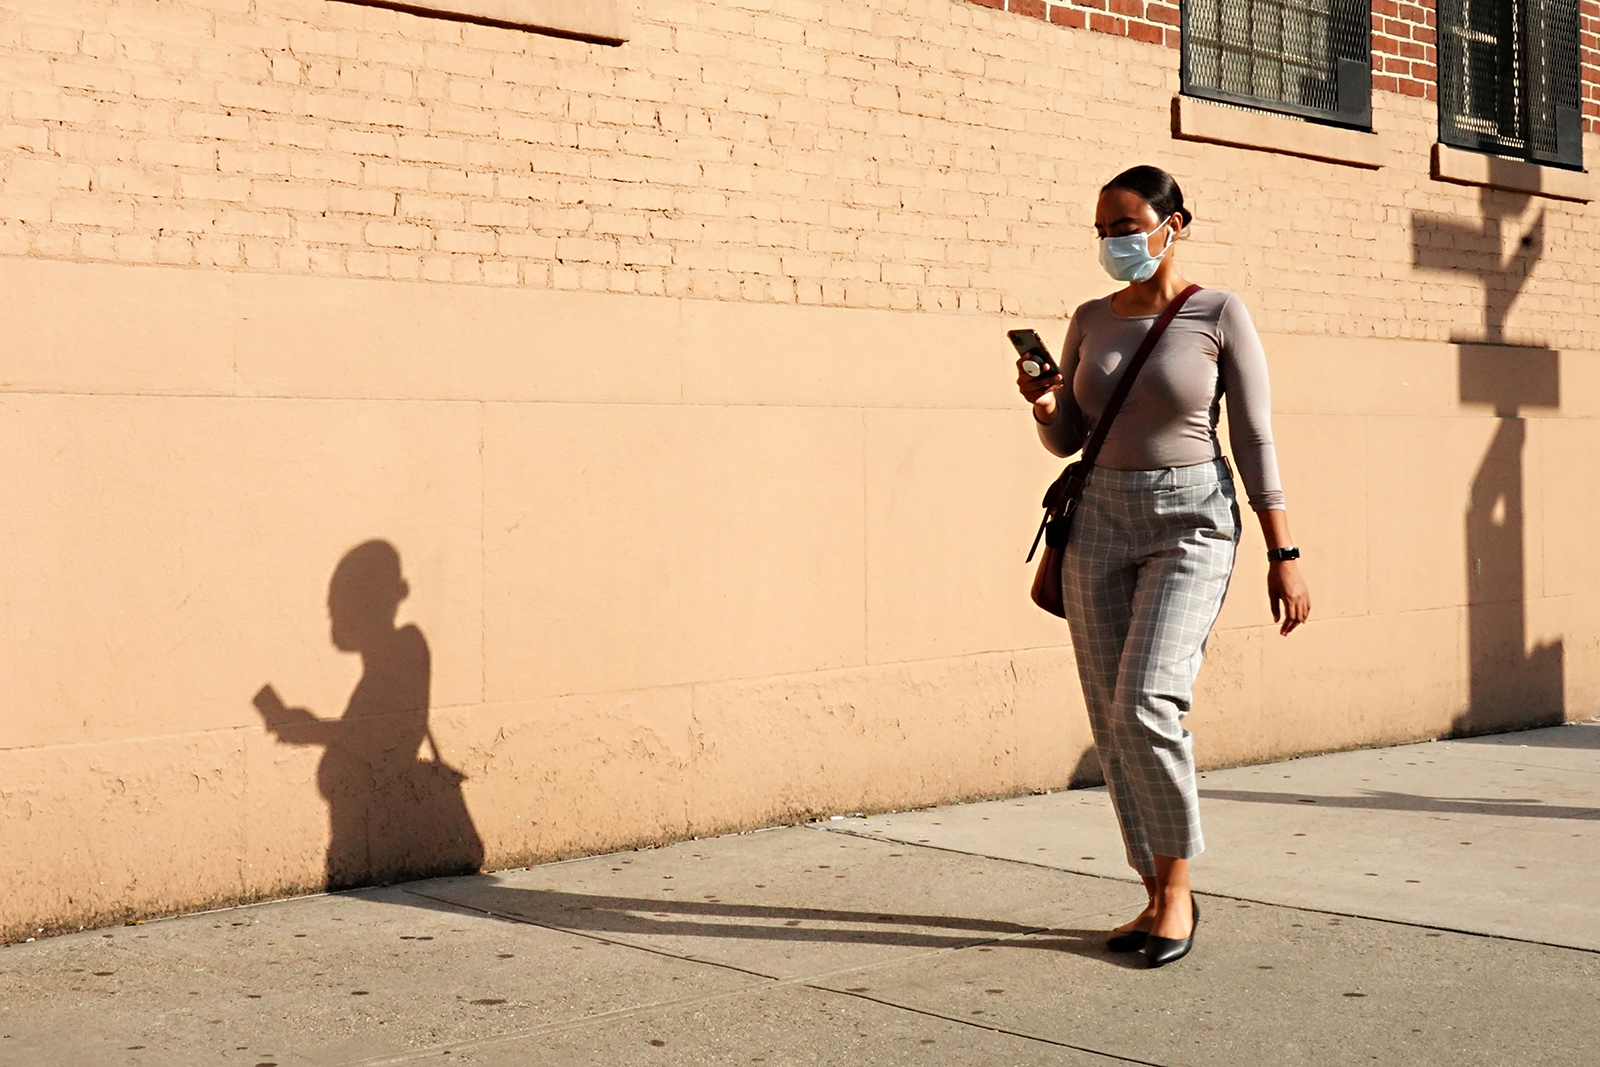 A woman wearing a protective mask walks while looking at a cellphone on August 6, in New York City.